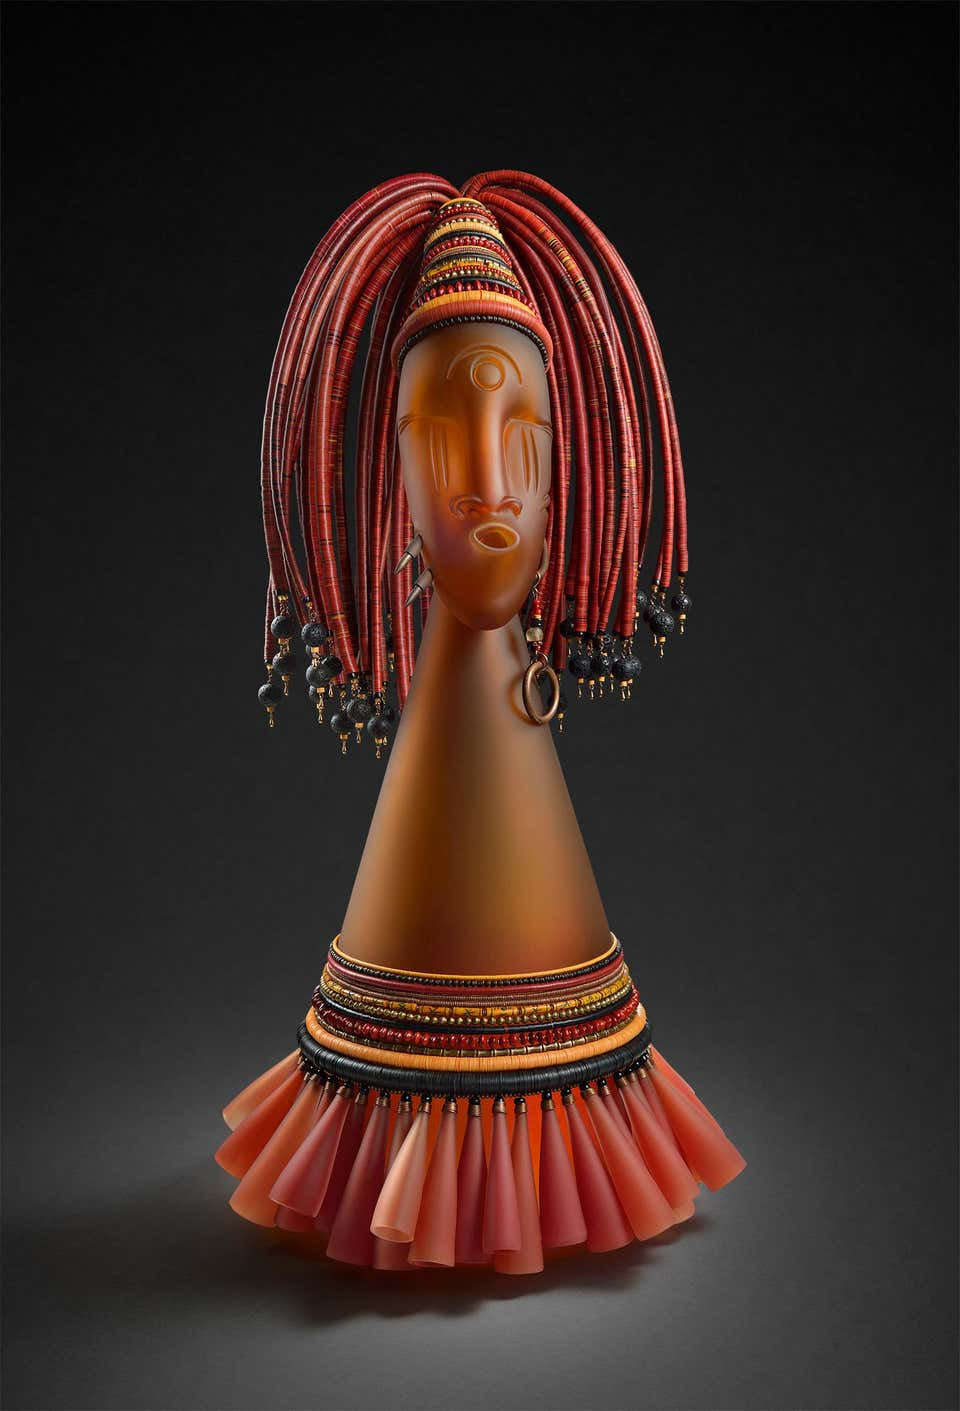 https://a.1stdibscdn.com/jenny-pohlman-and-sabrina-knowles-sculptures-untitled-head-cone-series-blown-sculpted-and-sandblasted-glass-beads-for-sale/a_972/a_48020011564850080891/Head_Cone_master.jpg?disable=upscale&auto=webp&quality=60&width=960